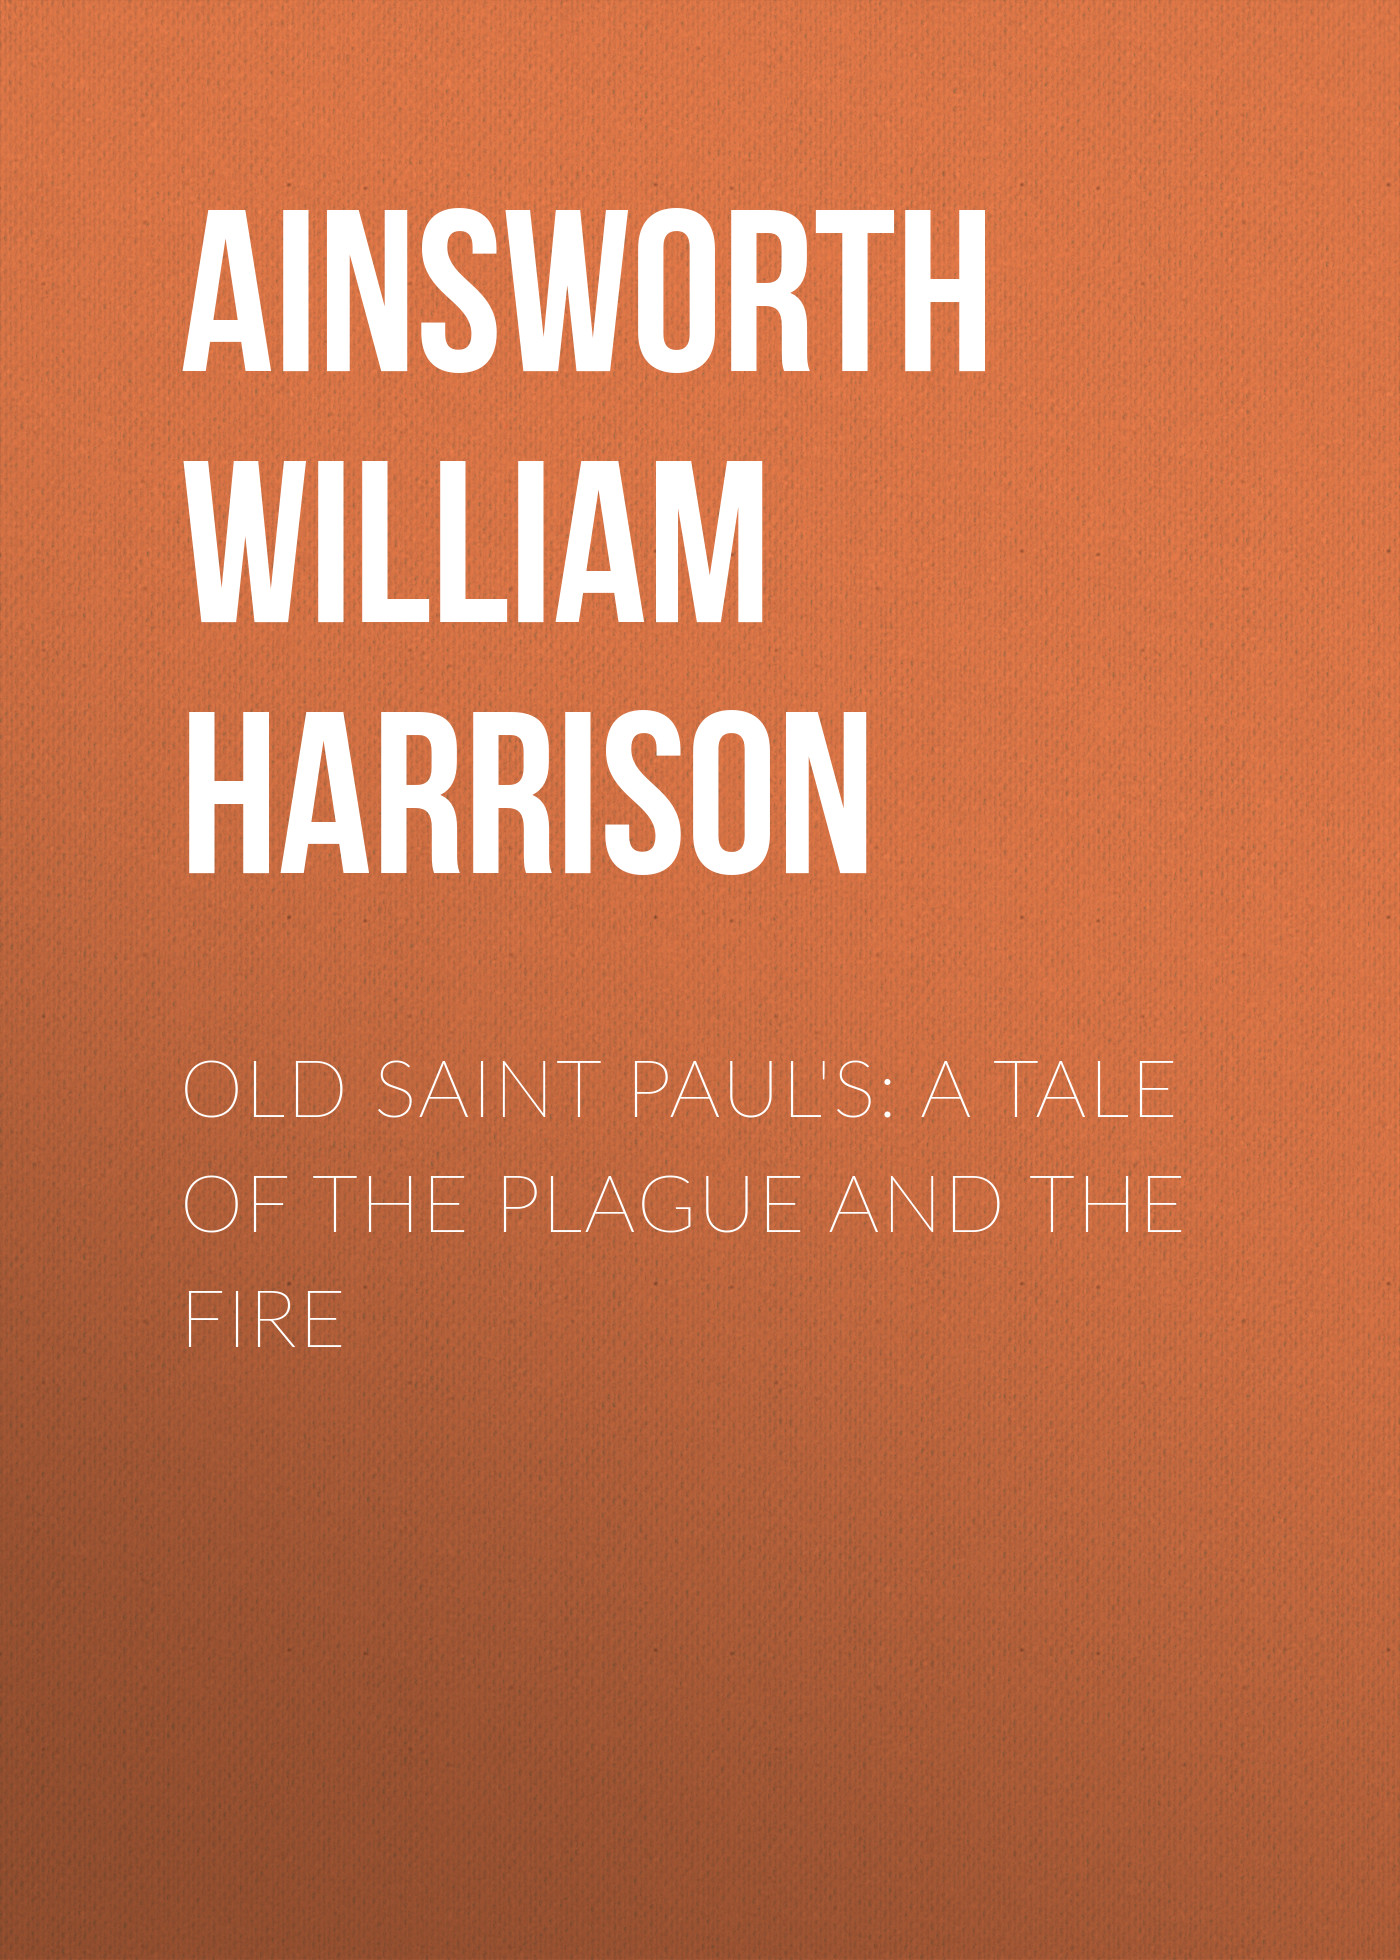 Ainsworth William Harrison Old Saint Paul's: A Tale of the Plague and the Fire ainsworth william harrison windsor castle